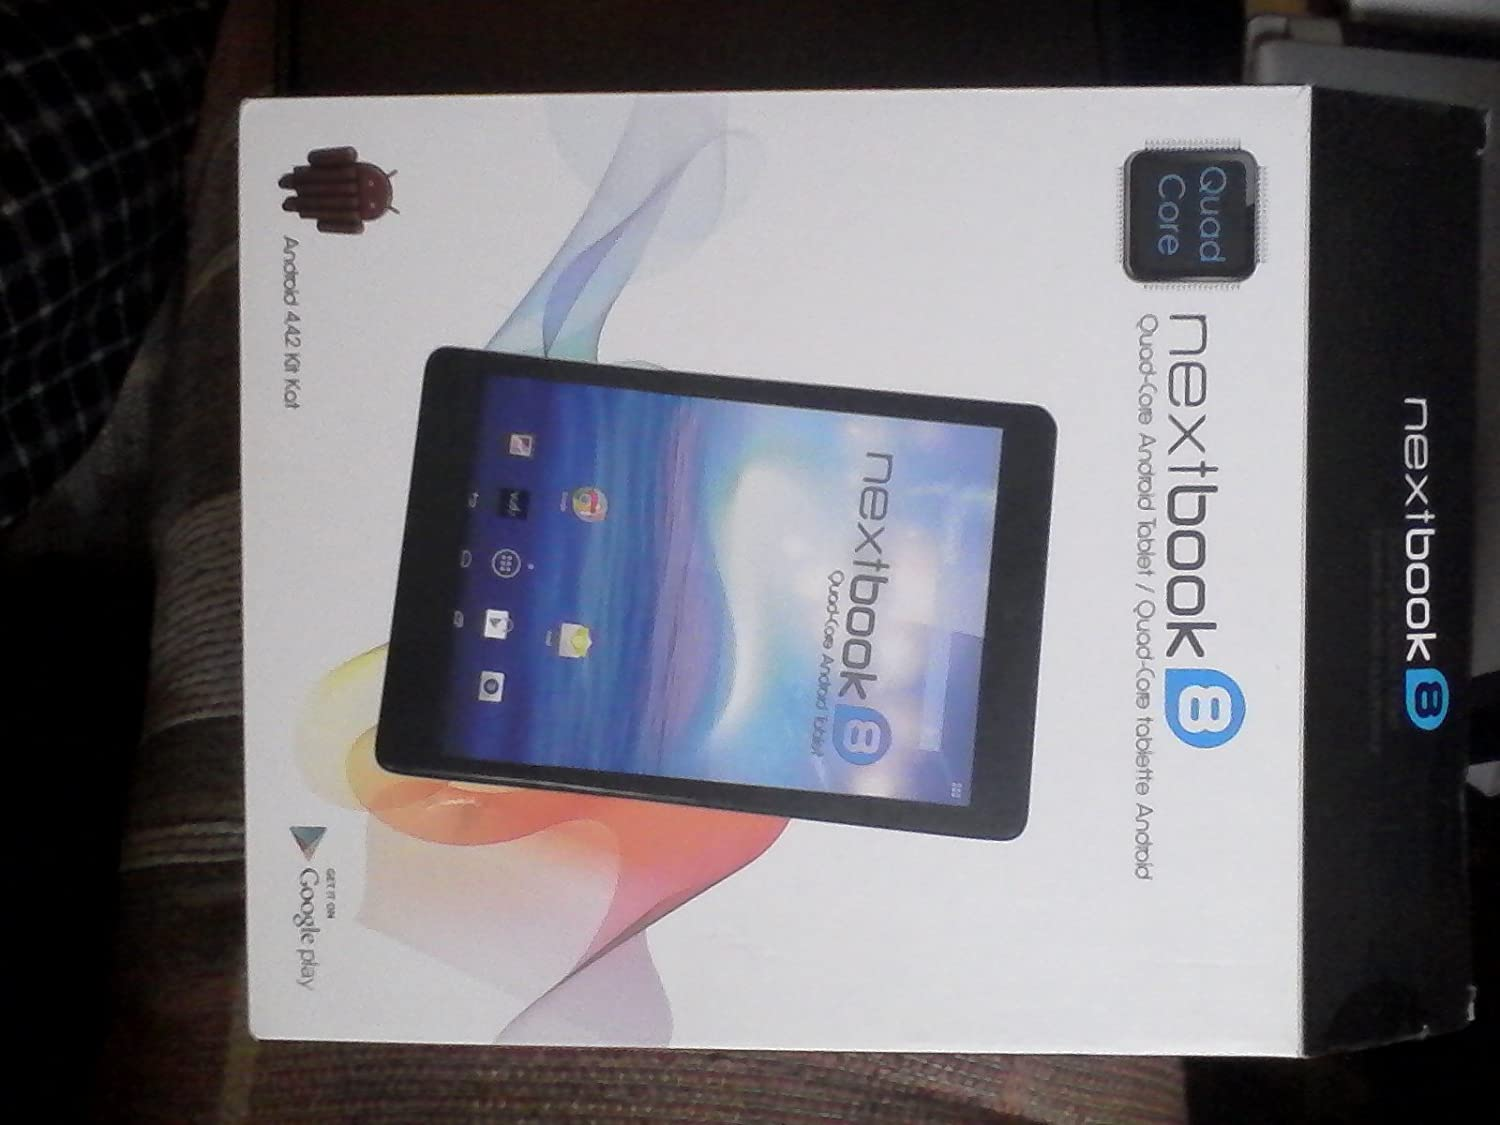 Nextbook 8 Quad Core Android 8GB Tablet